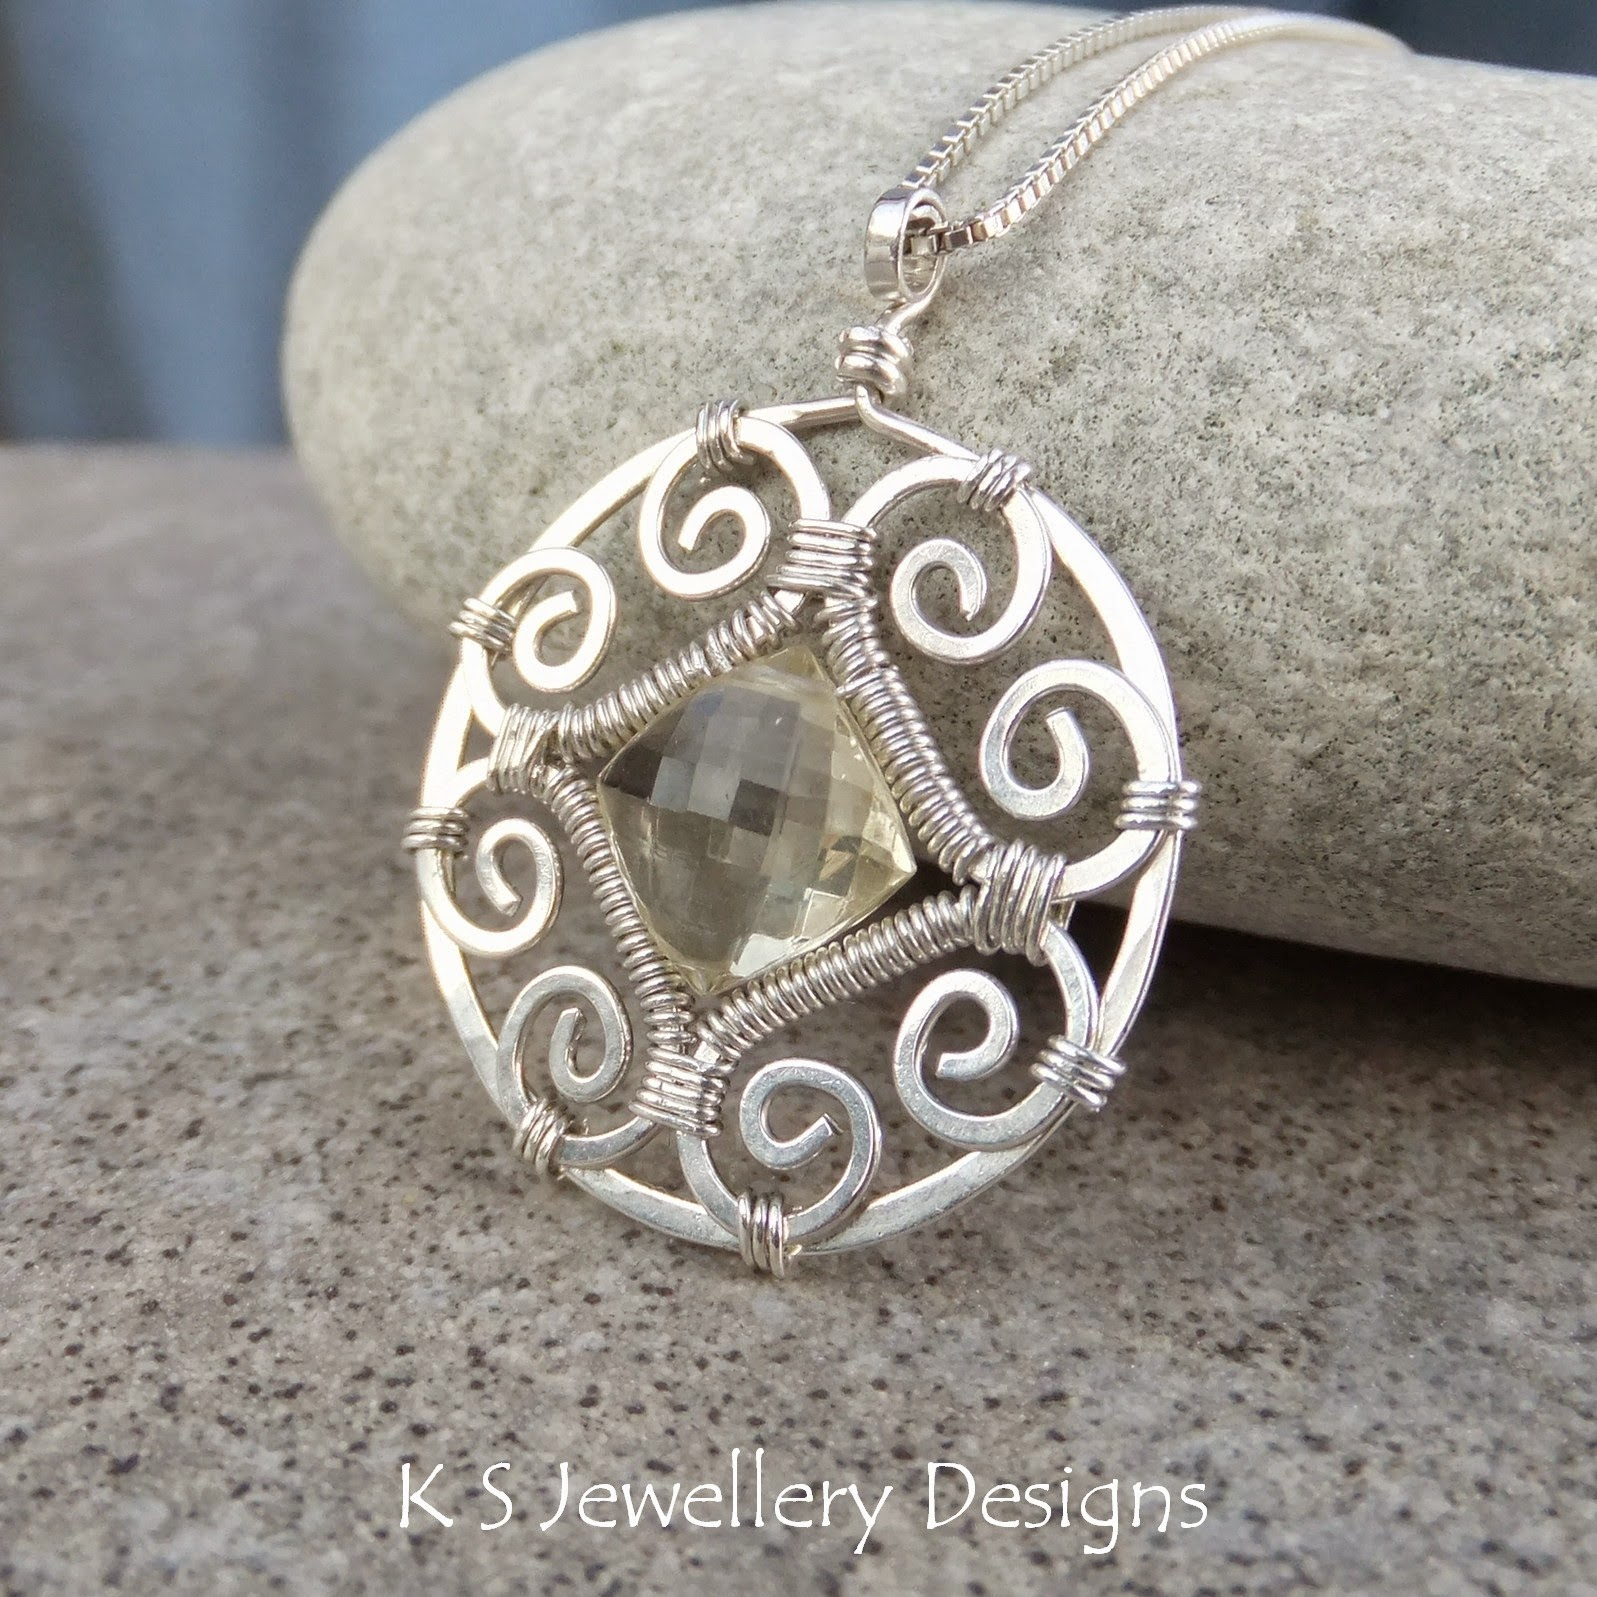 http://ksjewellerydesigns.co.uk/ourshop/prod_2922948-Scapolite-Sterling-Silver-Circle-Frame-Pendant-Necklace.html